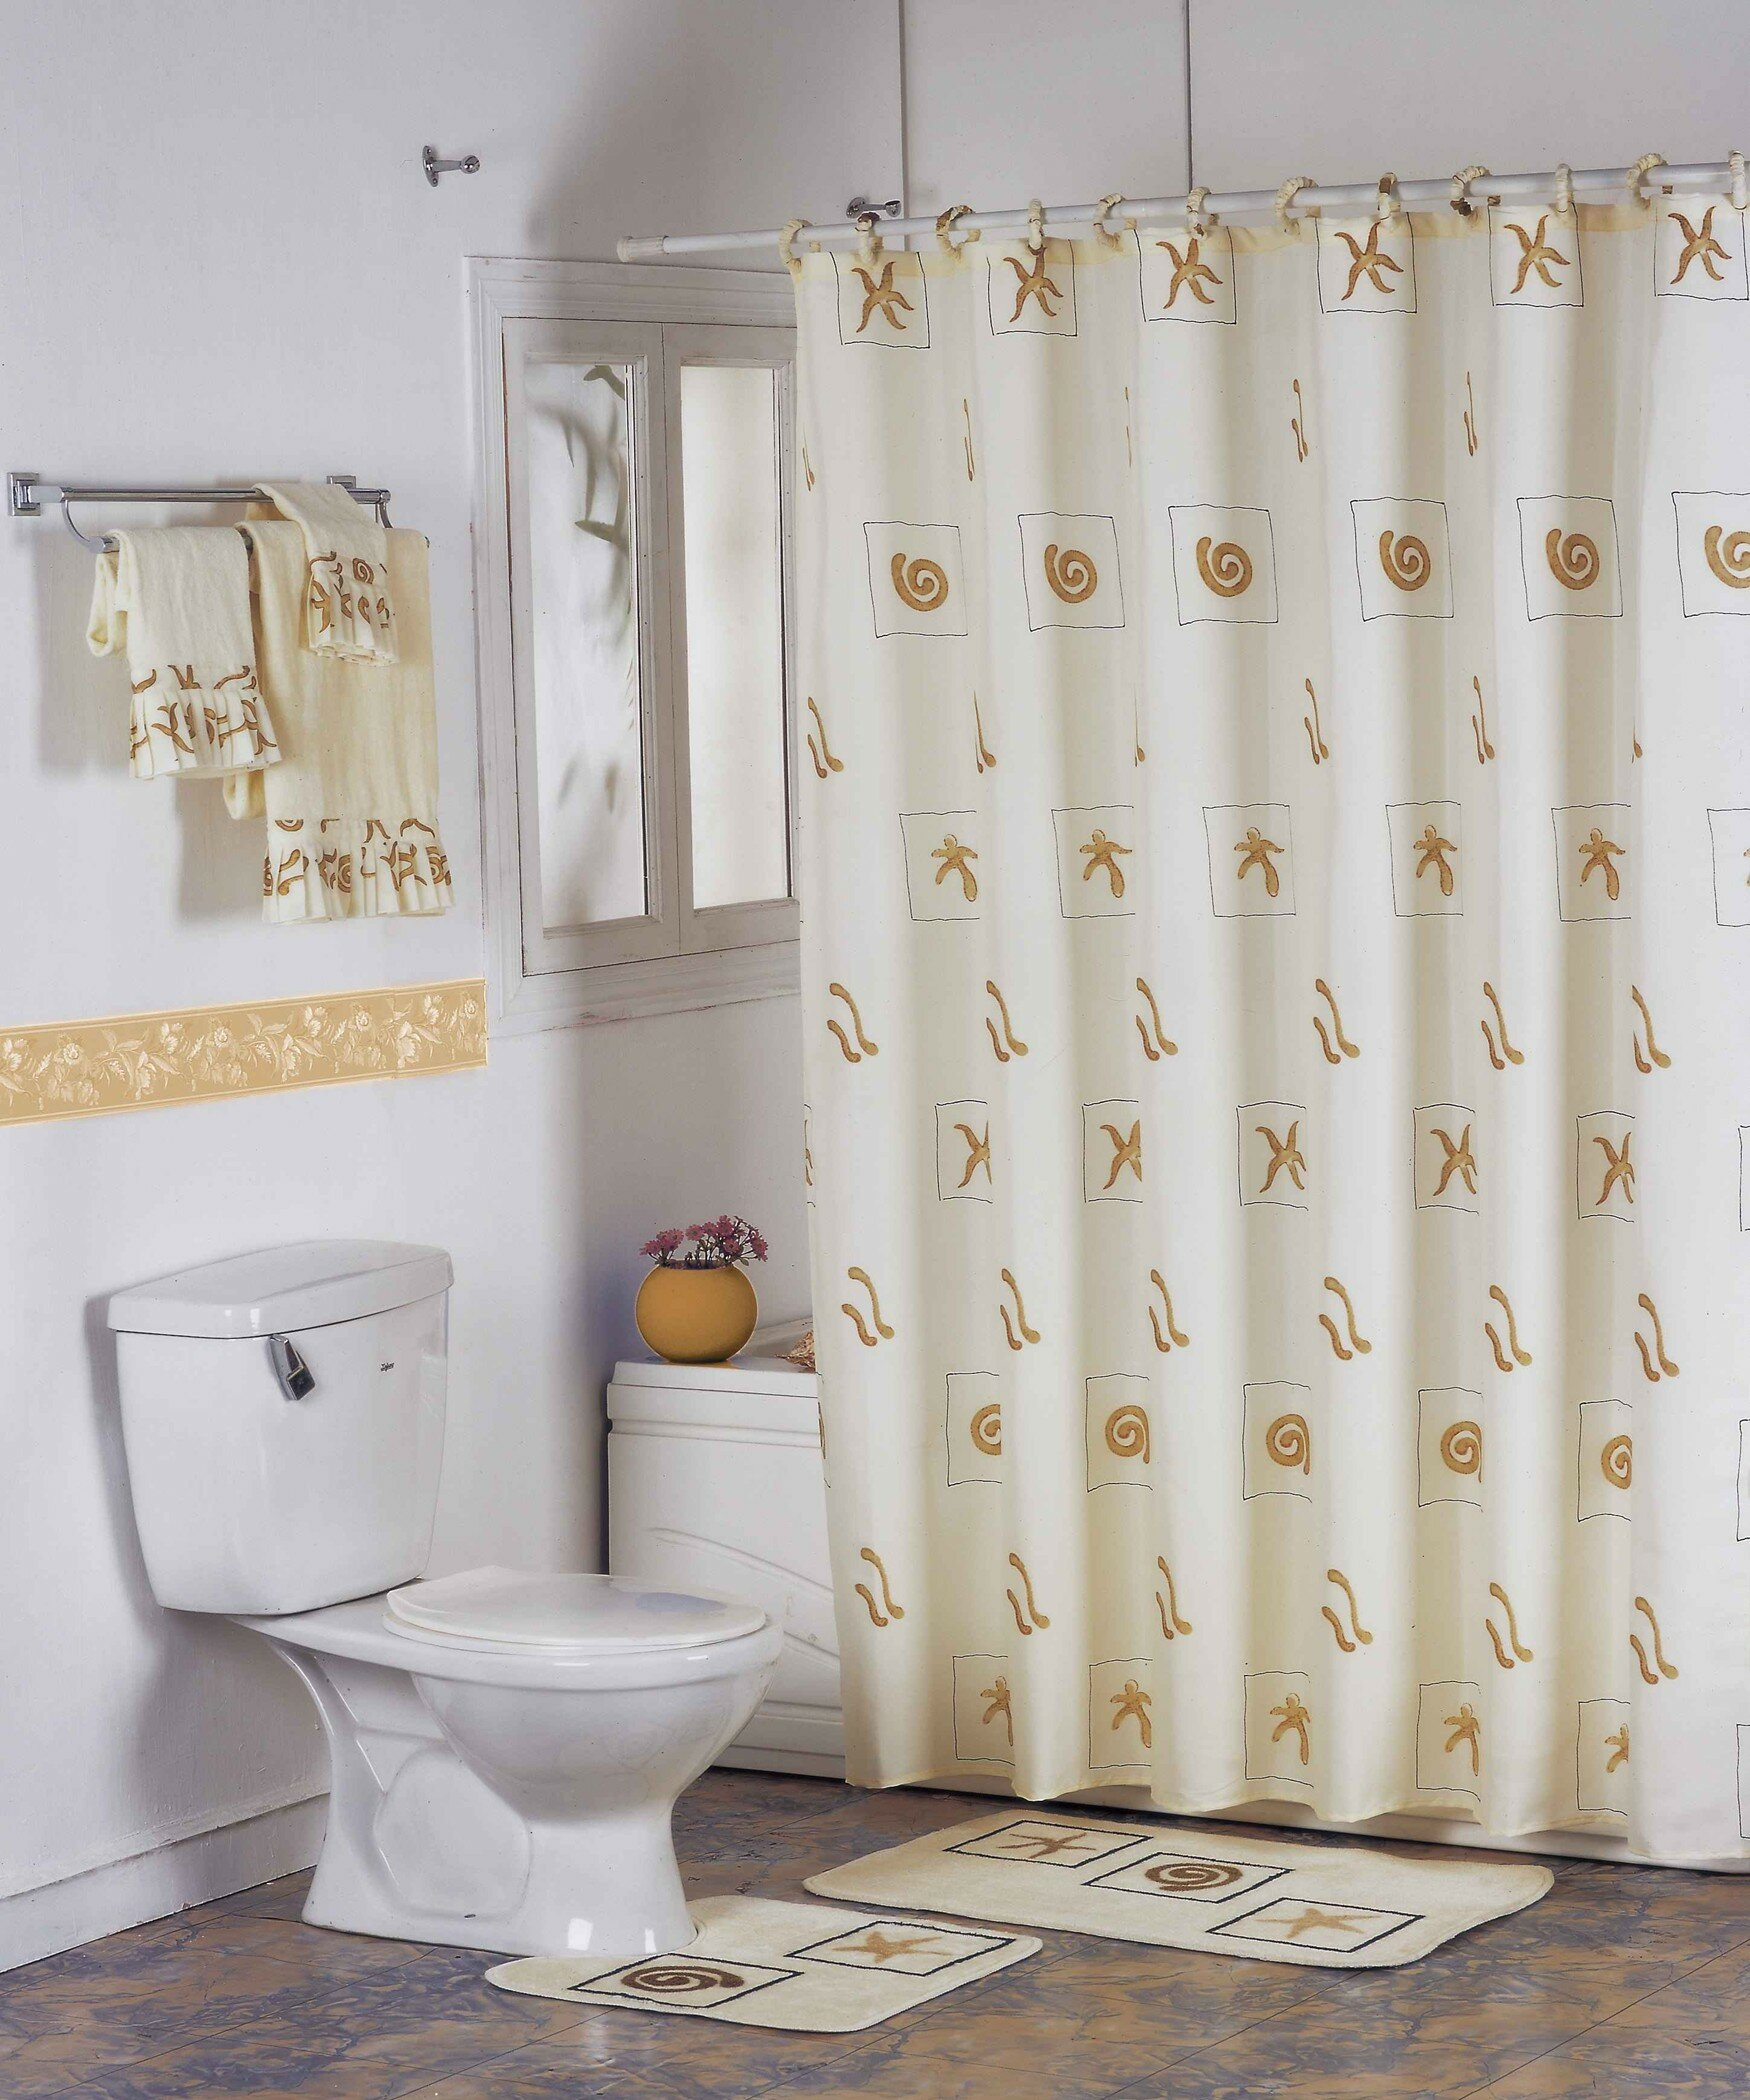 Interesting Bathroom Decor Ideas with Restoration Hardware Shower Curtain: High End Shower Curtains | Brushed Nickel Curtain Rod | Restoration Hardware Shower Curtain